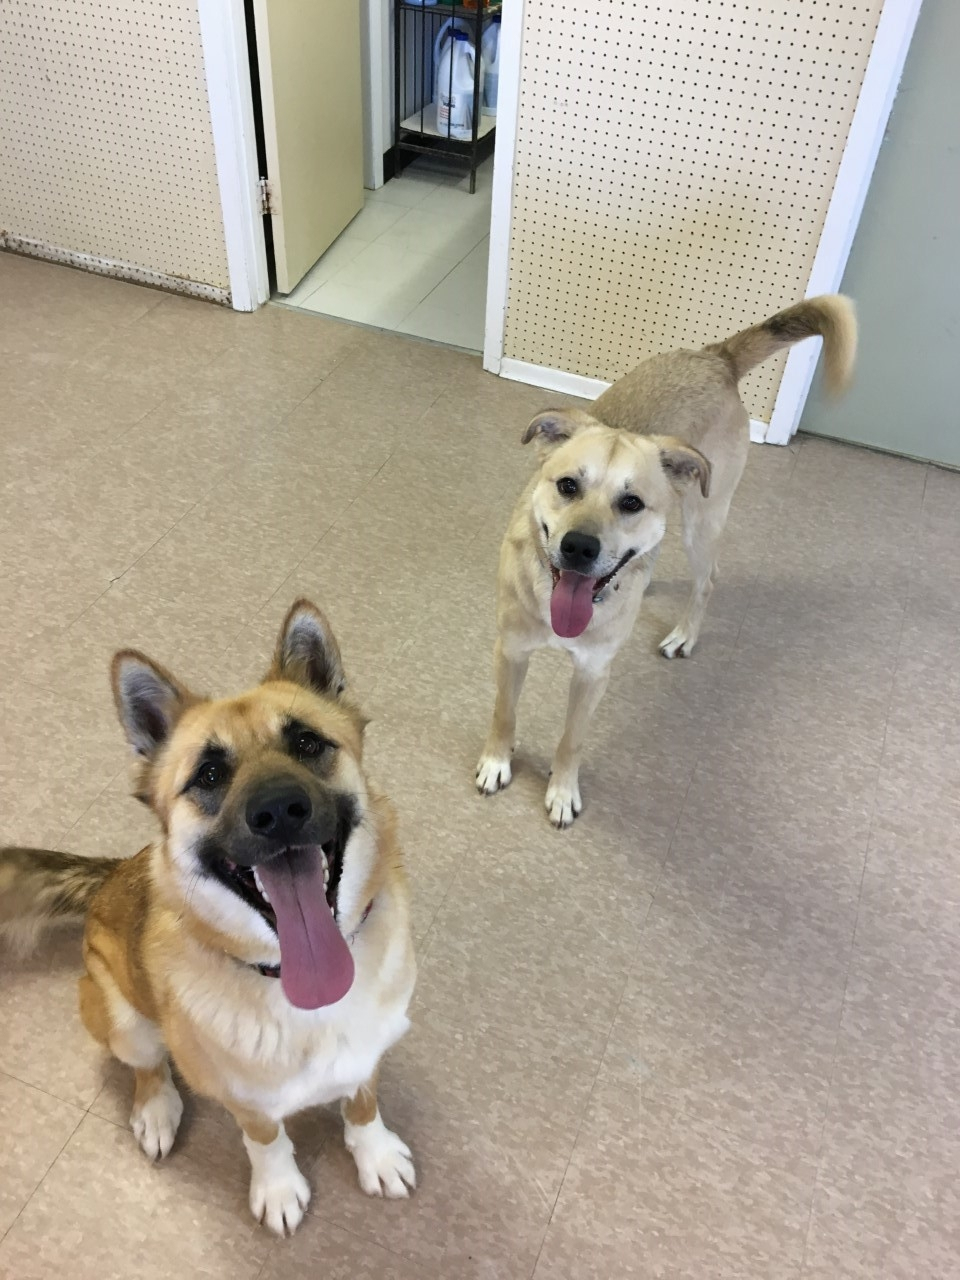 Stuart and Roxy are both amazing and lovable dogs! Stuart is in the back of the picture and Roxy is the dog in the front with the pointed ears. Stuart is a fixed male and he is around 3 years of age. Roxy is not spayed as of yet and she is around 1.5 years old.